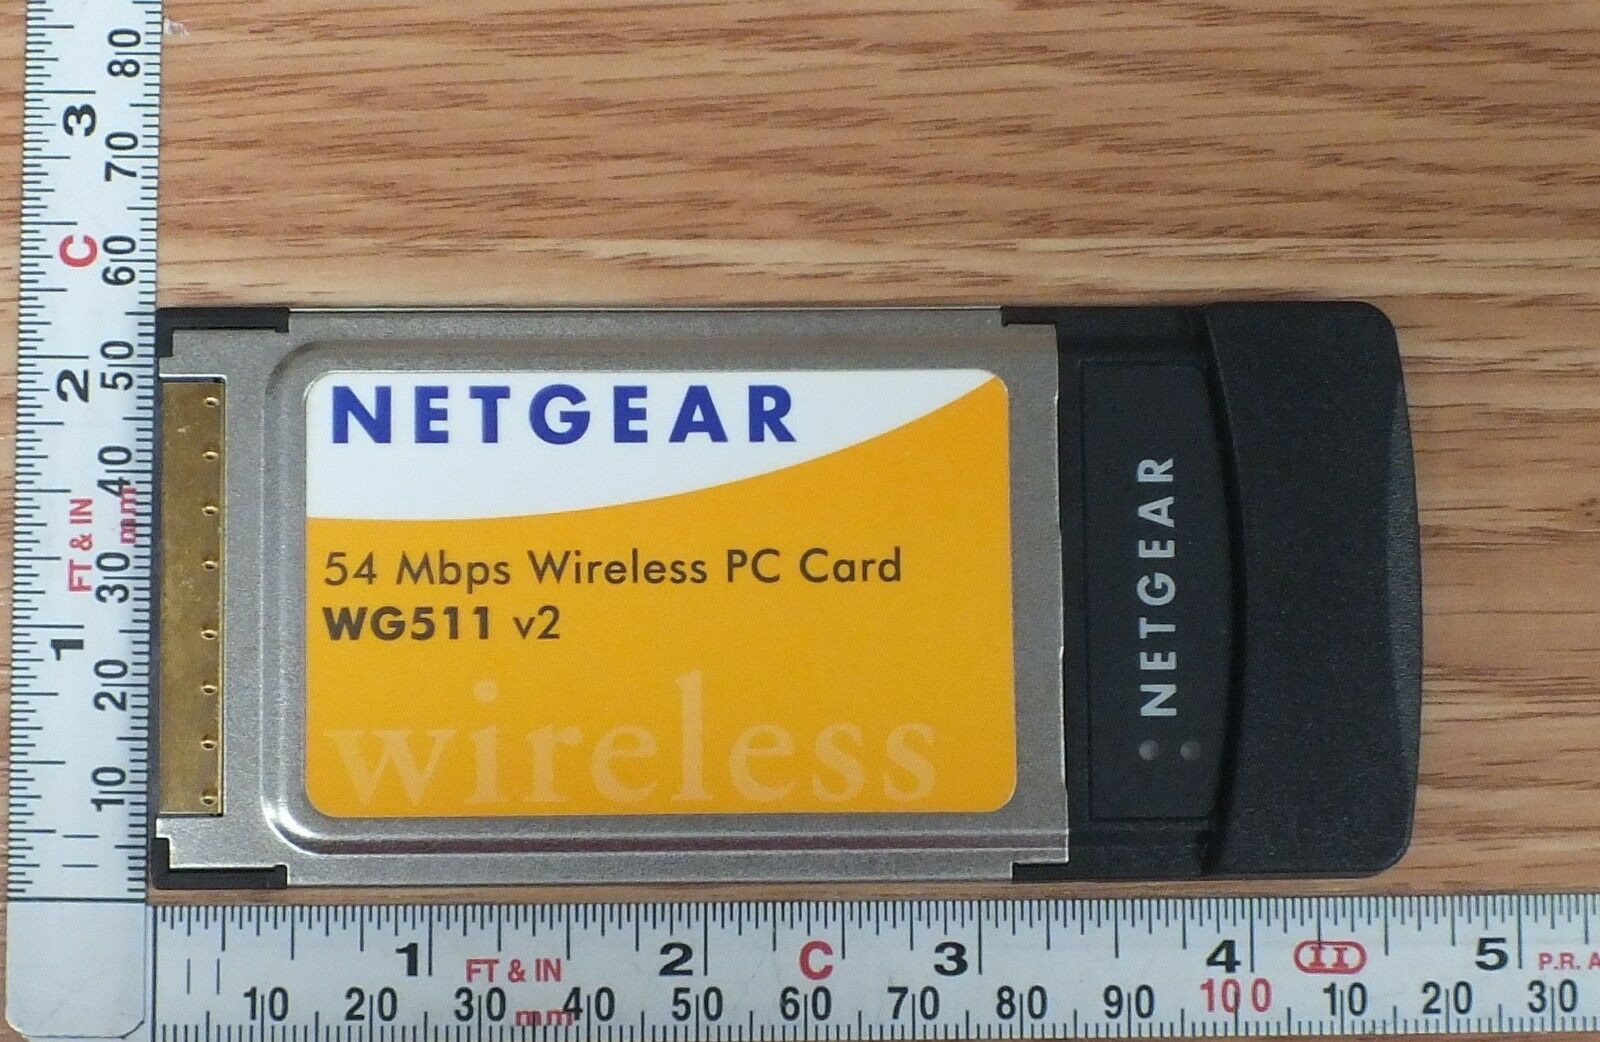 Configuring a netgear wg511v2 wireless pcmcia card for archlinux.